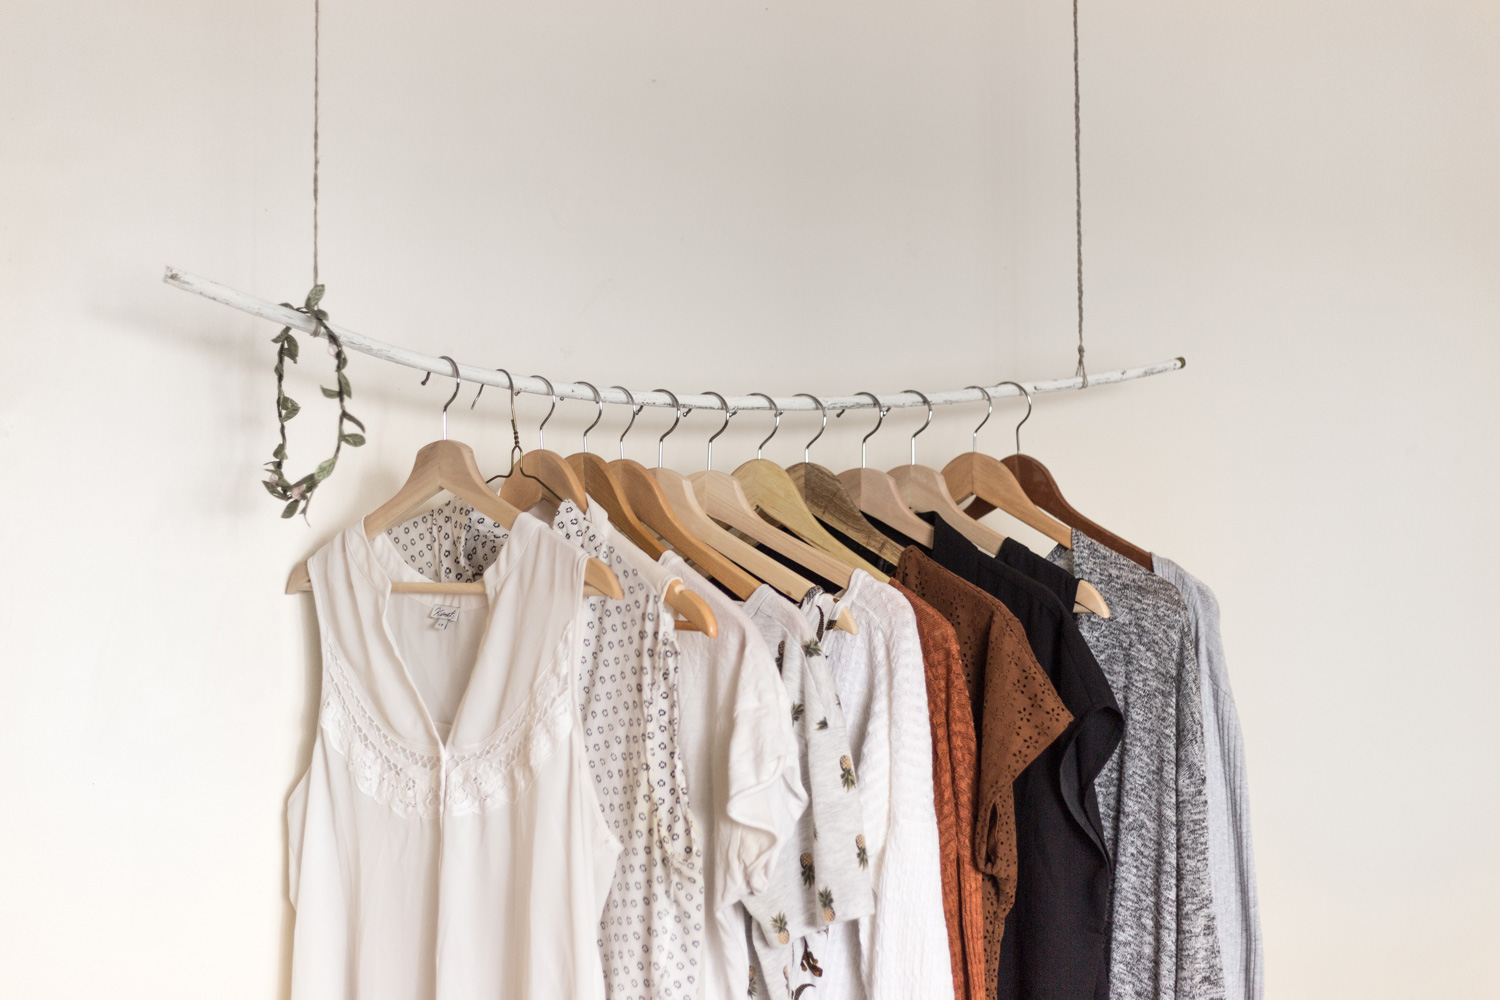 multiple clothes hung on a clothes rack that is attached to the ceiling